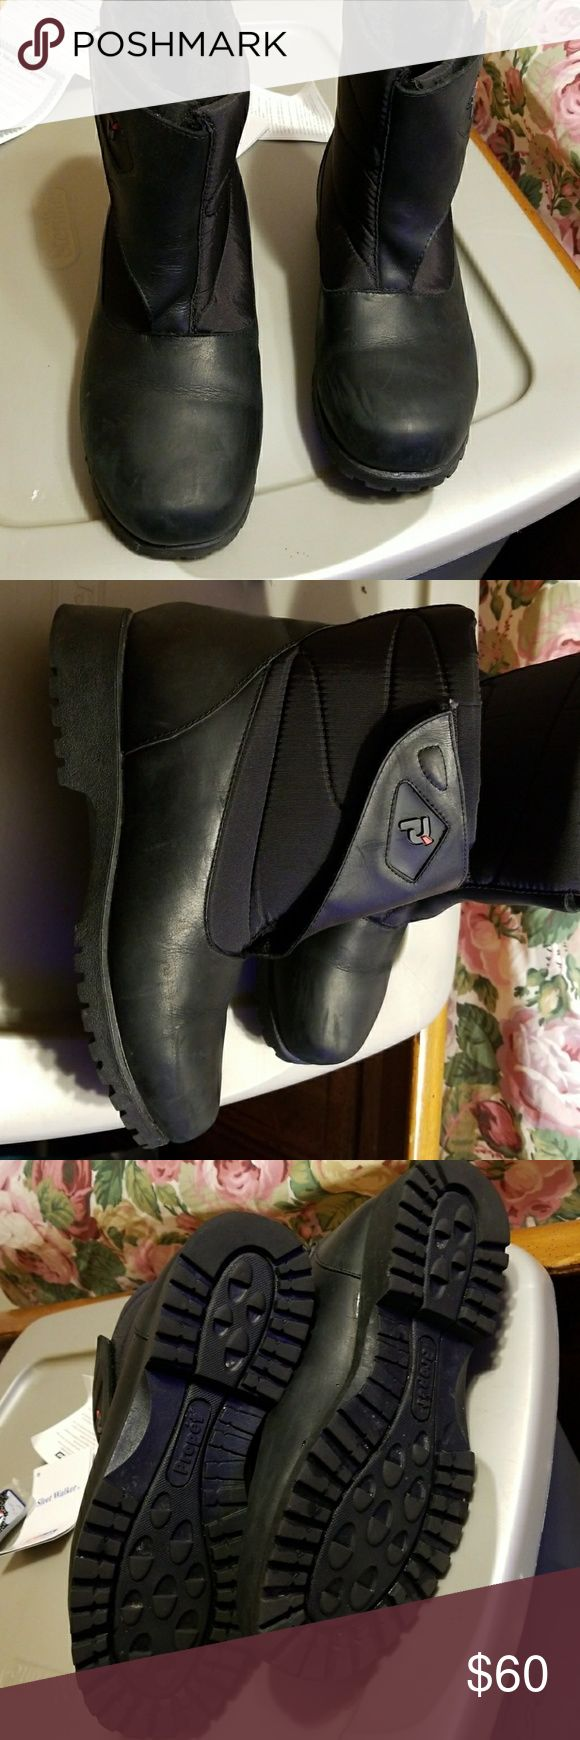 Blk waterproof boots Winter boots. Acrylic lining. Never worn. Propet Shoes Winter & Rain Boots